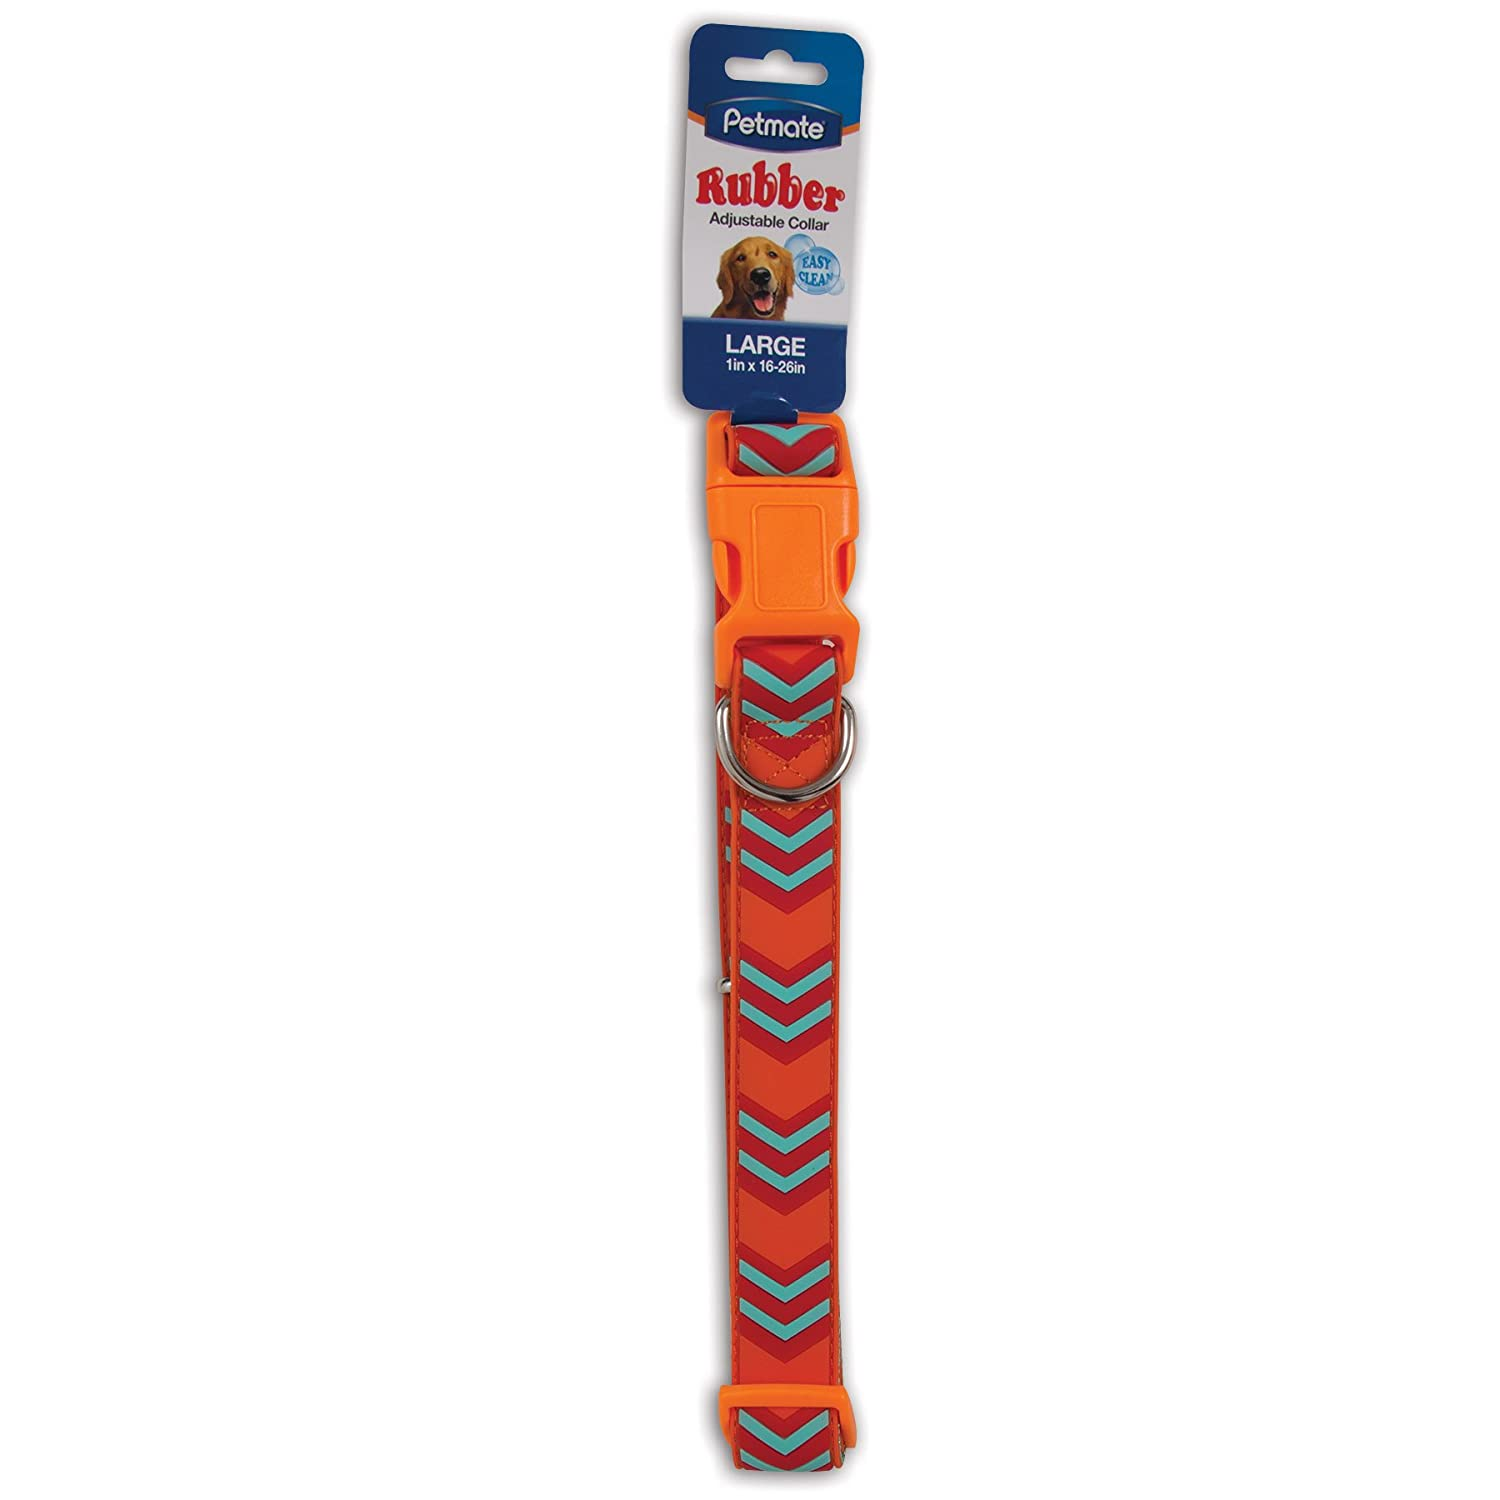 Aspen Pet Products Petmate Rubber Collar, orange Chevron, 1  x 16-26